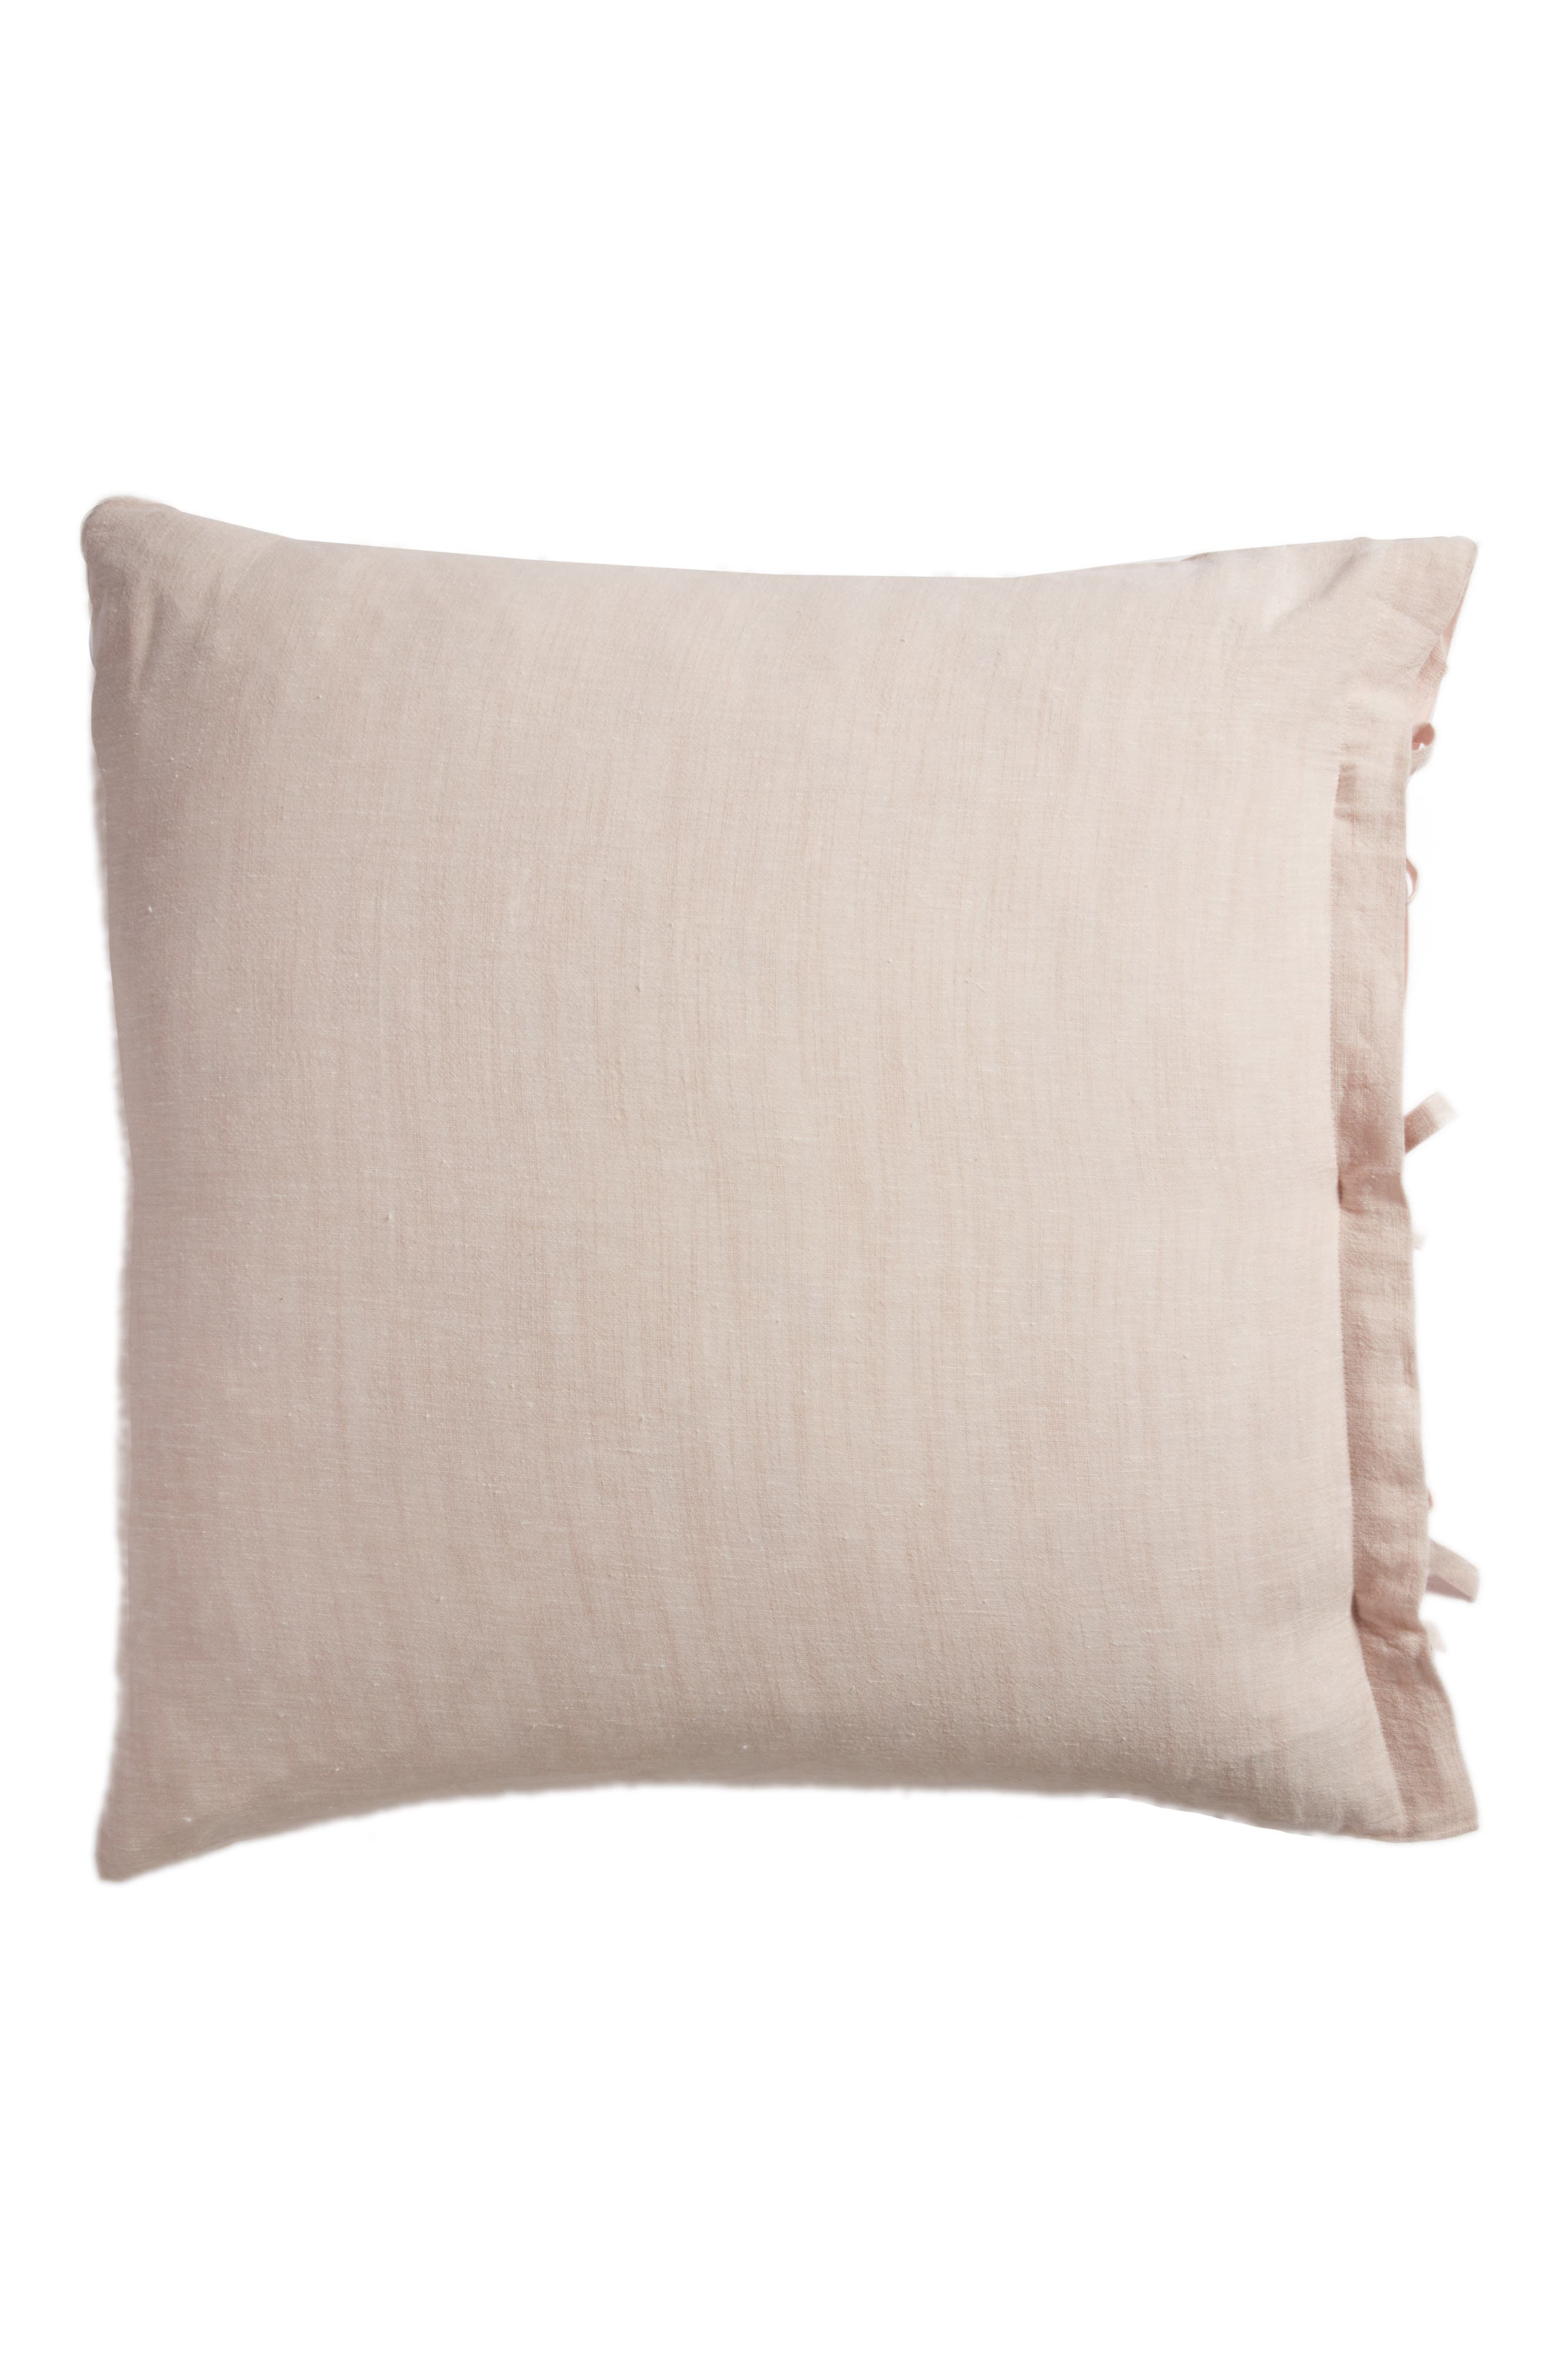 Alternate Image 1 Selected - Treasure & Bond Relaxed Cotton & Linen Euro Sham